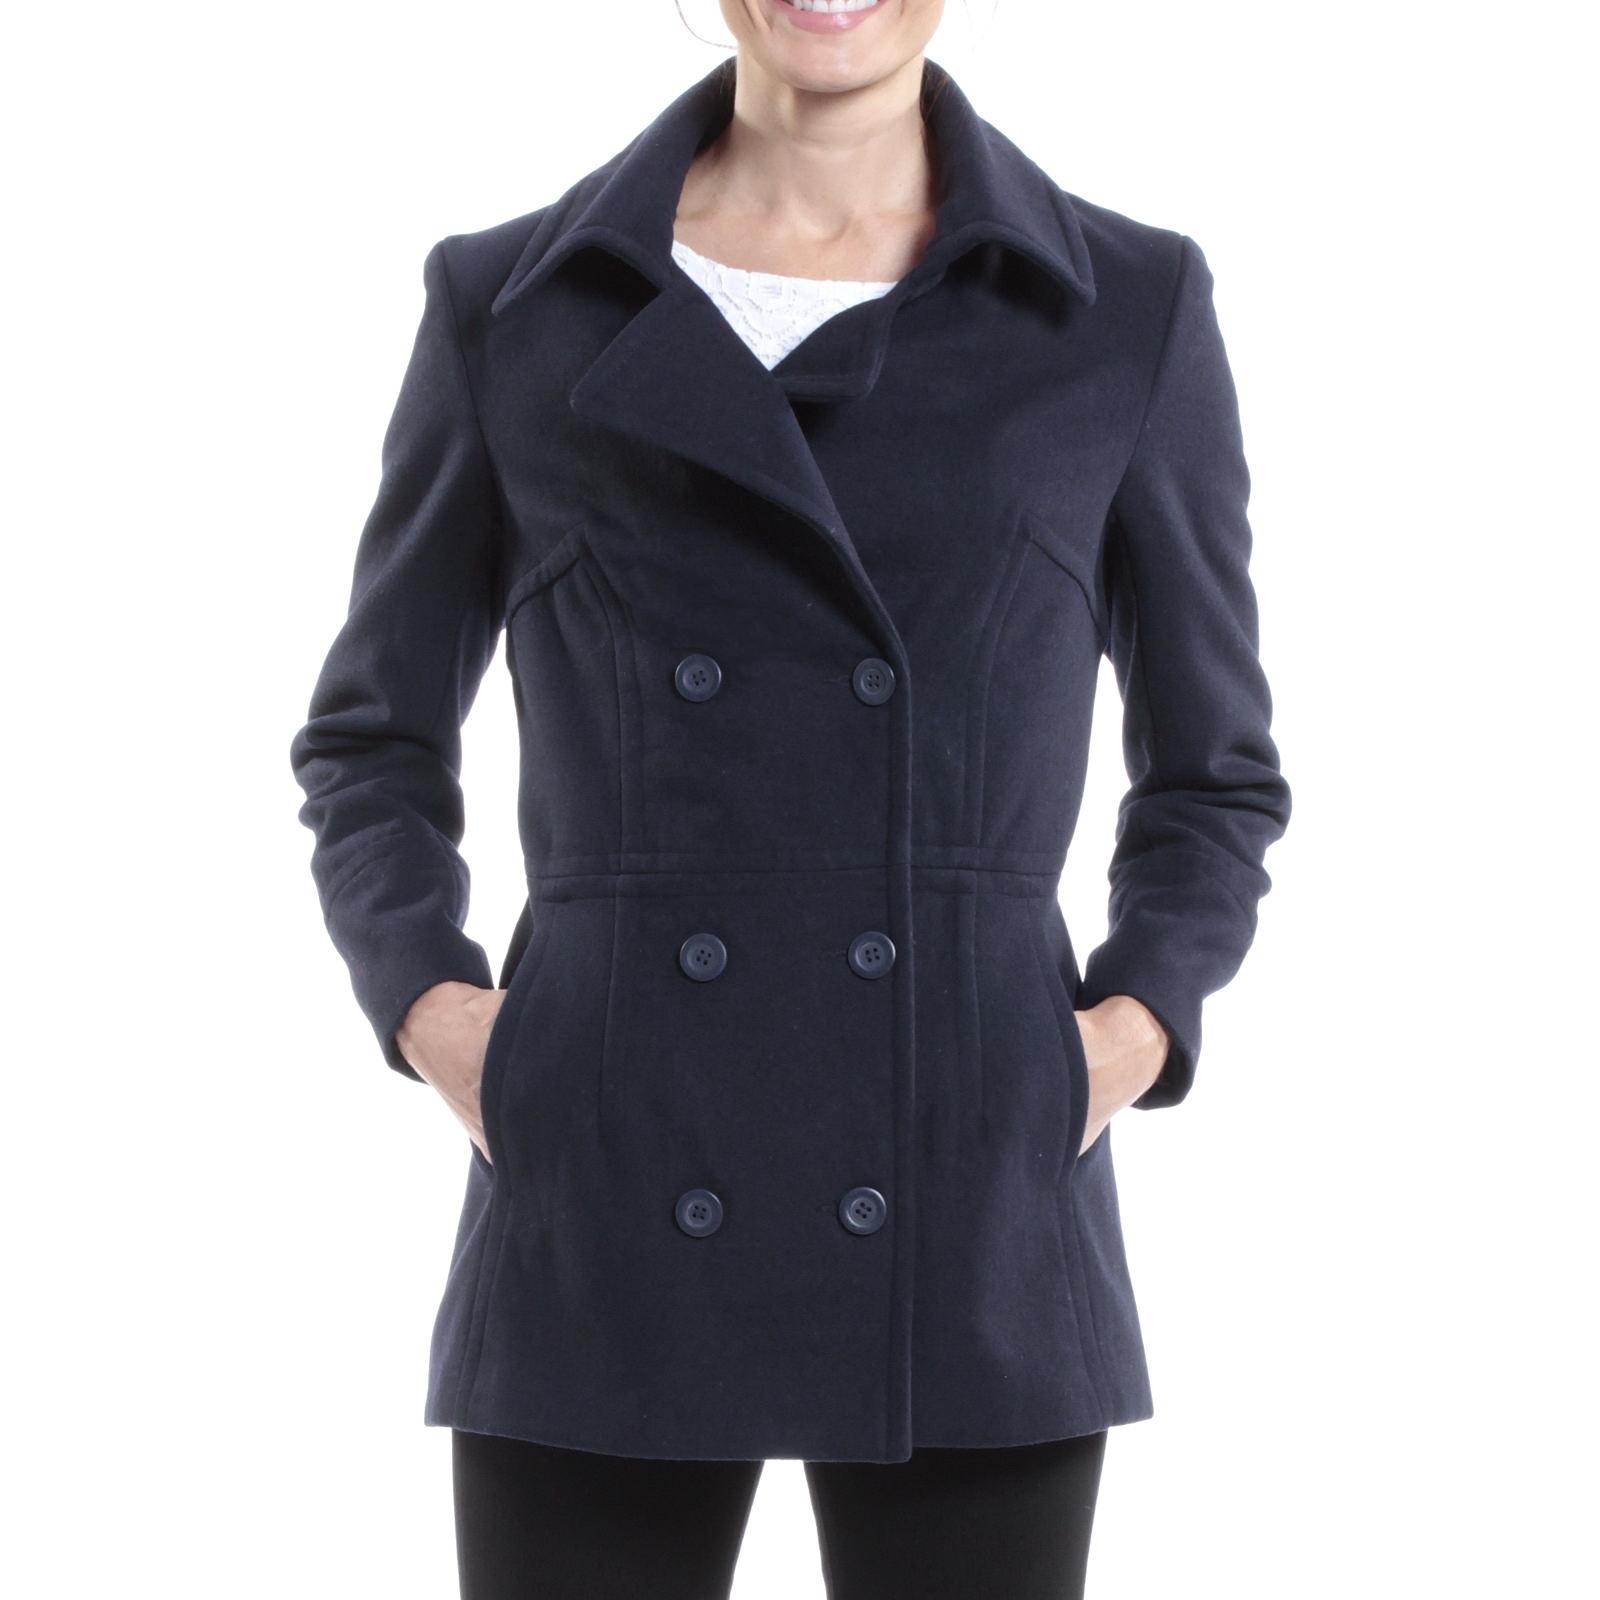 Shop a great selection of Wool Coats & Jackets for Women at Nordstrom Rack. Find designer Wool Coats & Jackets for Women up to 70% off and get free shipping on orders over $